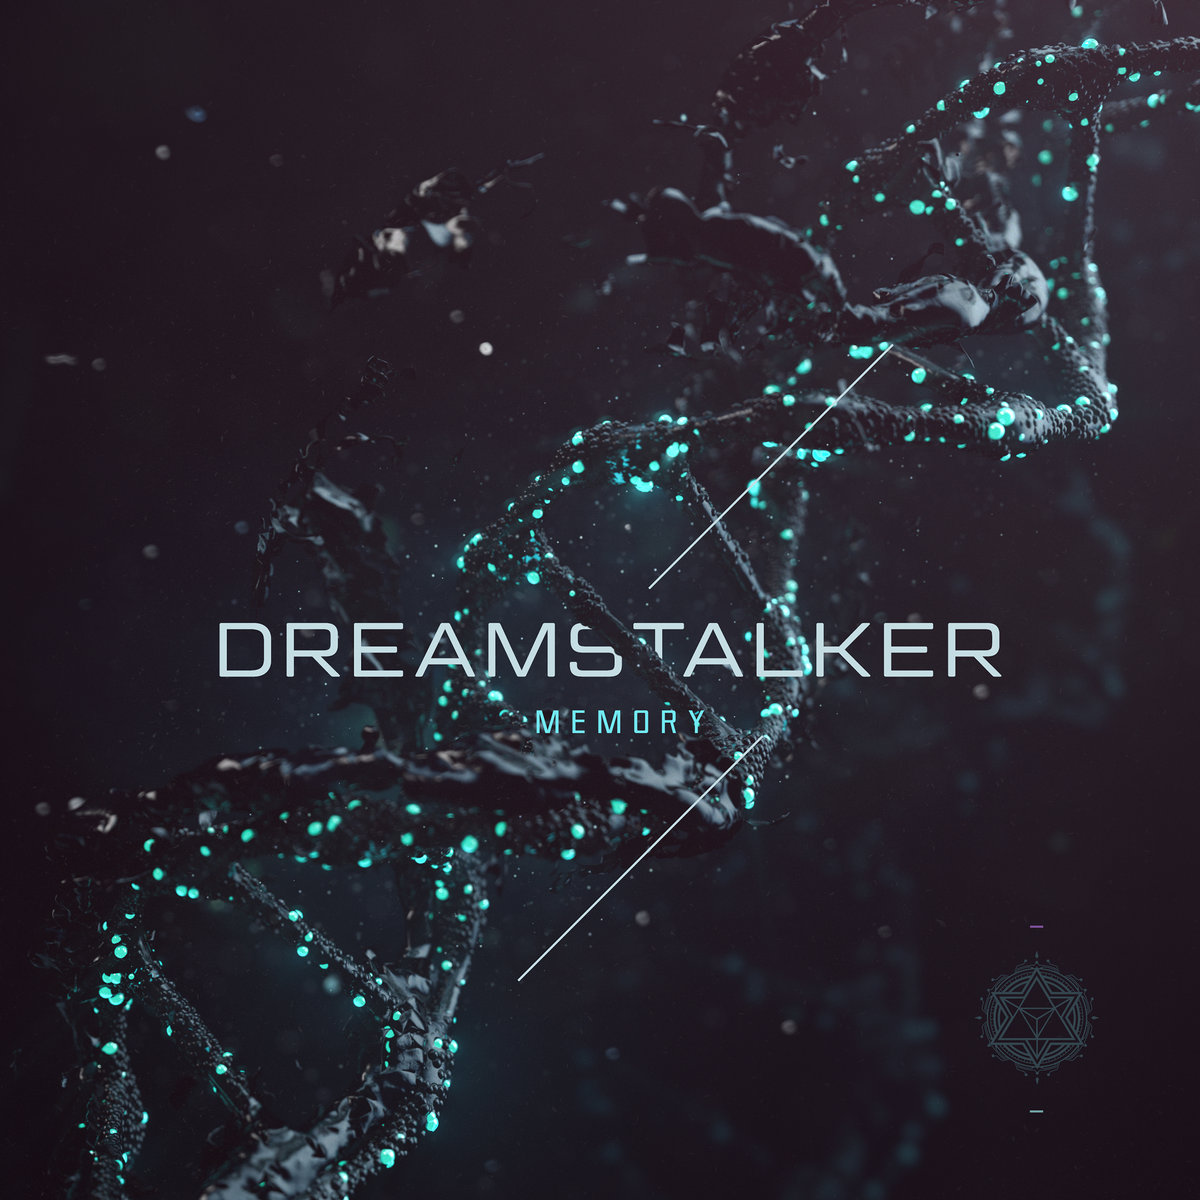 Dreamstalker - Fuse Dimension @ 'Memory' album (electronic, ambient)